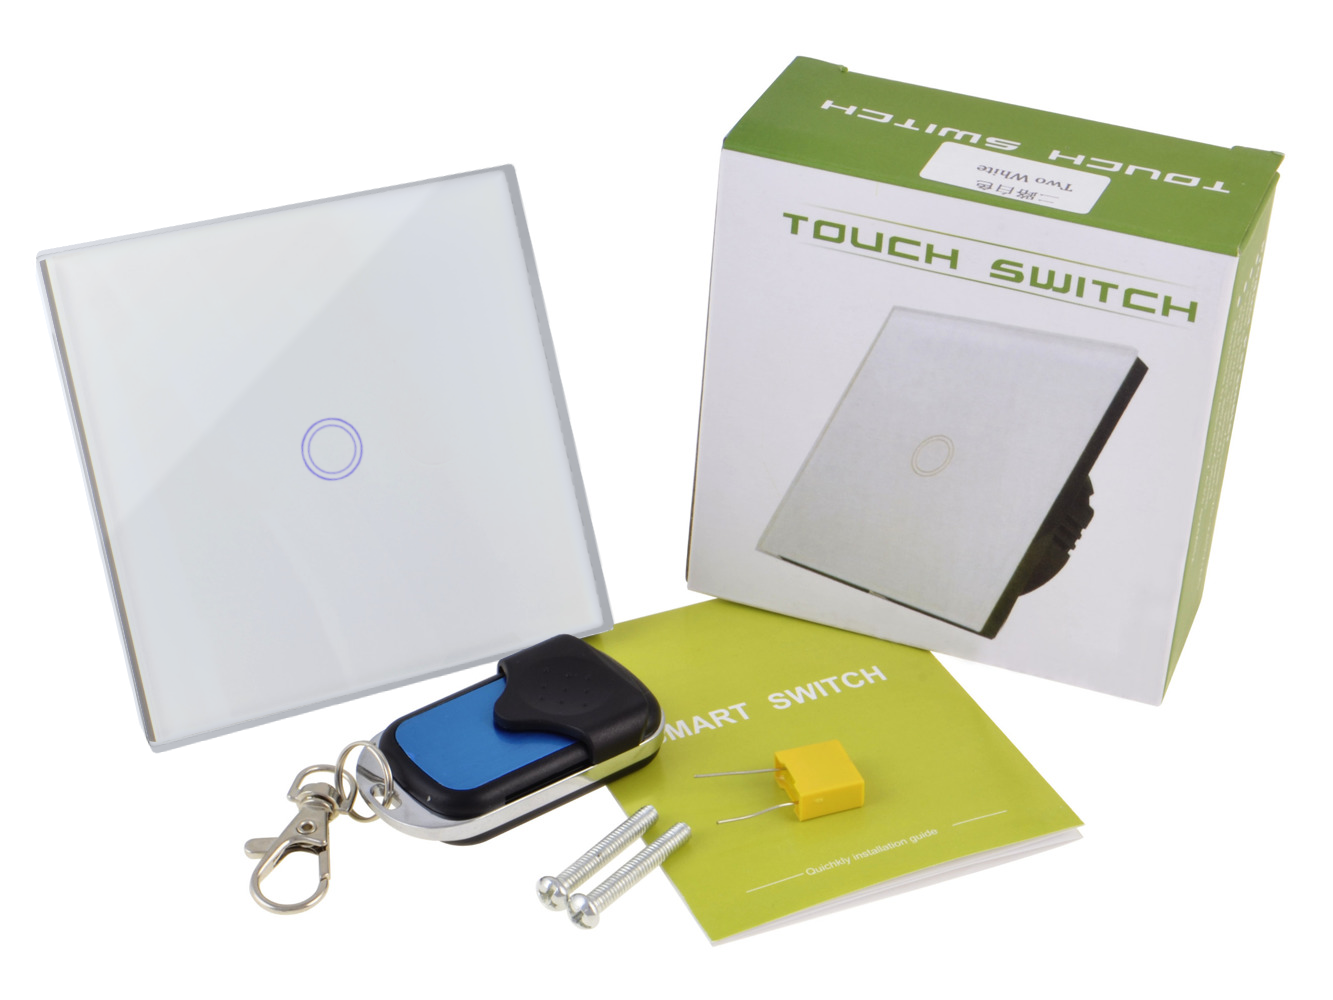 Set of smart touch switch with remote controler